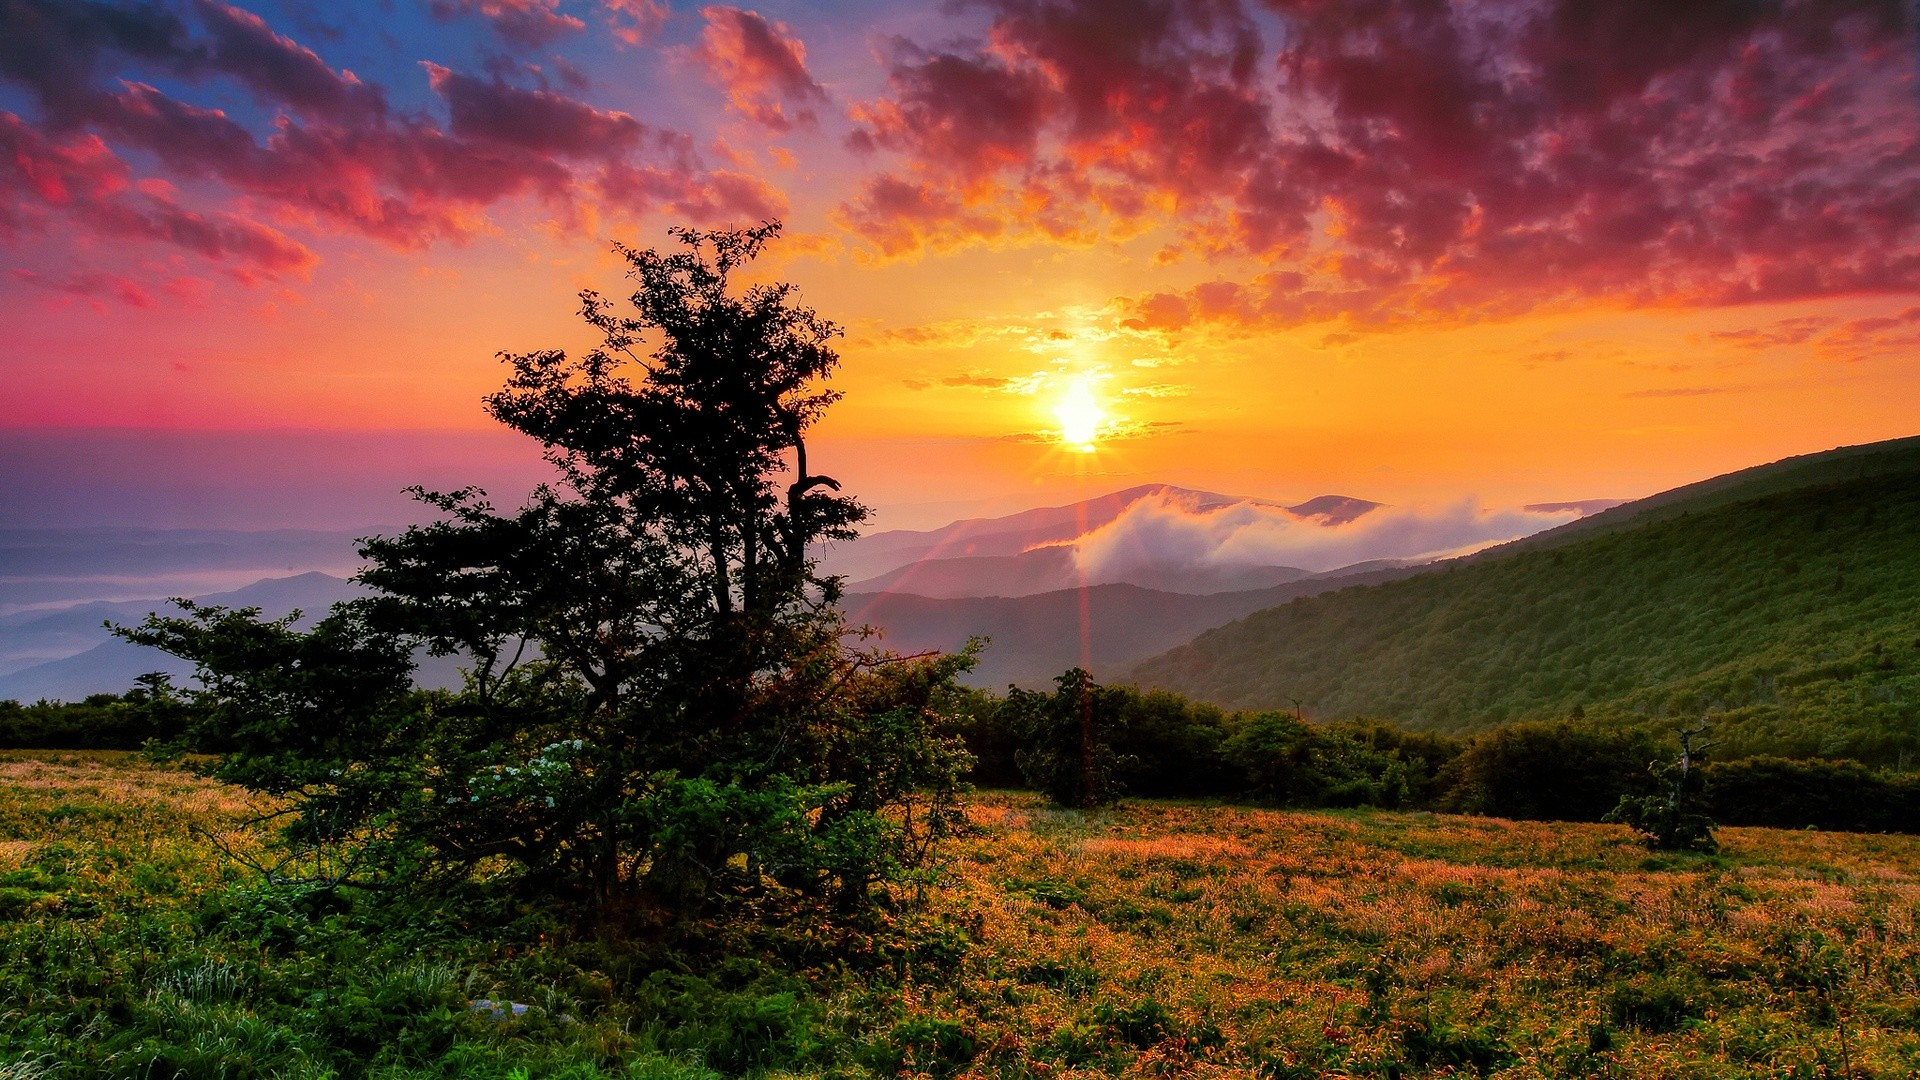 Hd Nature Wallpapers, Amazing Images, Natural, Cool, - Sunrise Nature Wallpaper Hd - HD Wallpaper